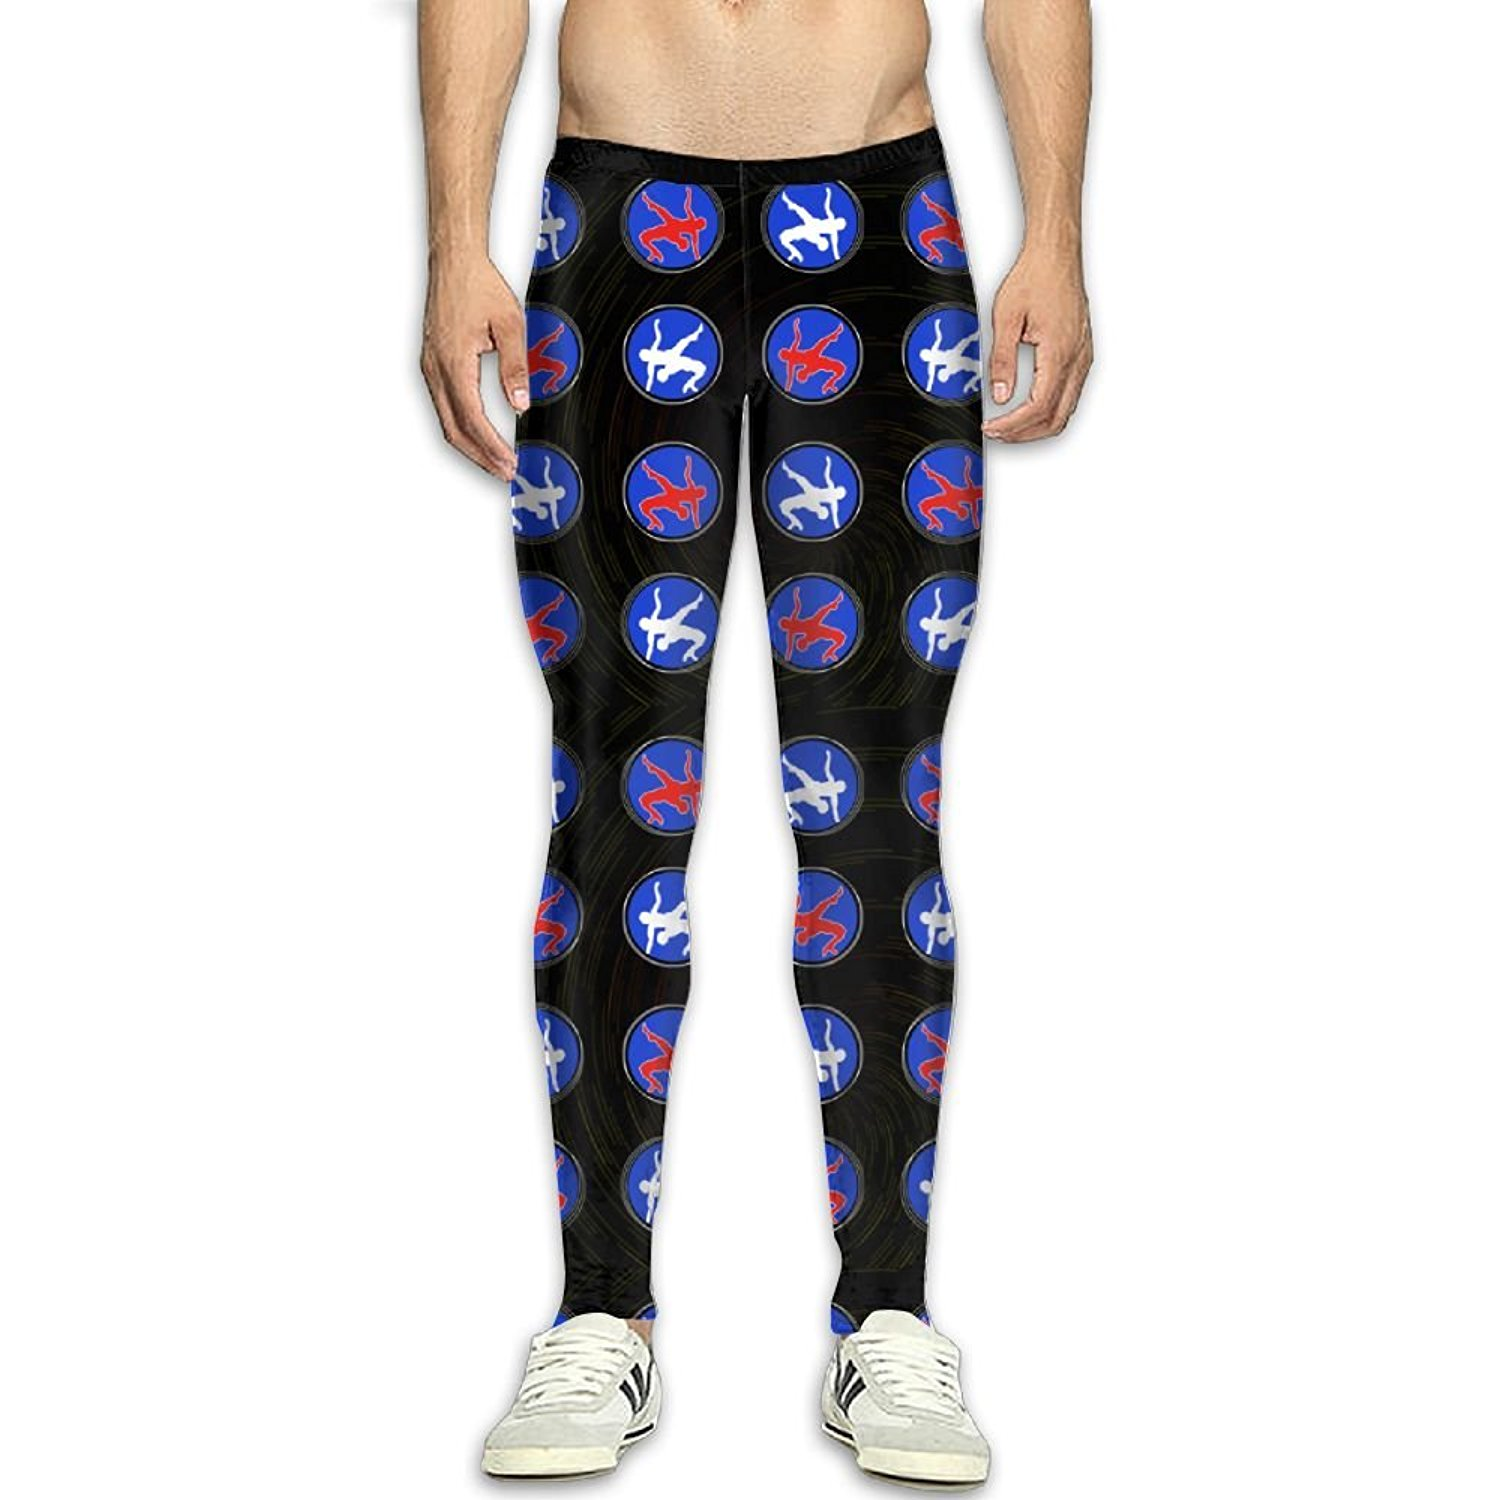 05f947cb18779 Get Quotations · Fri USA Wrestling Logo Compression Pants Running Tights  Gym Tights for Men High Waist